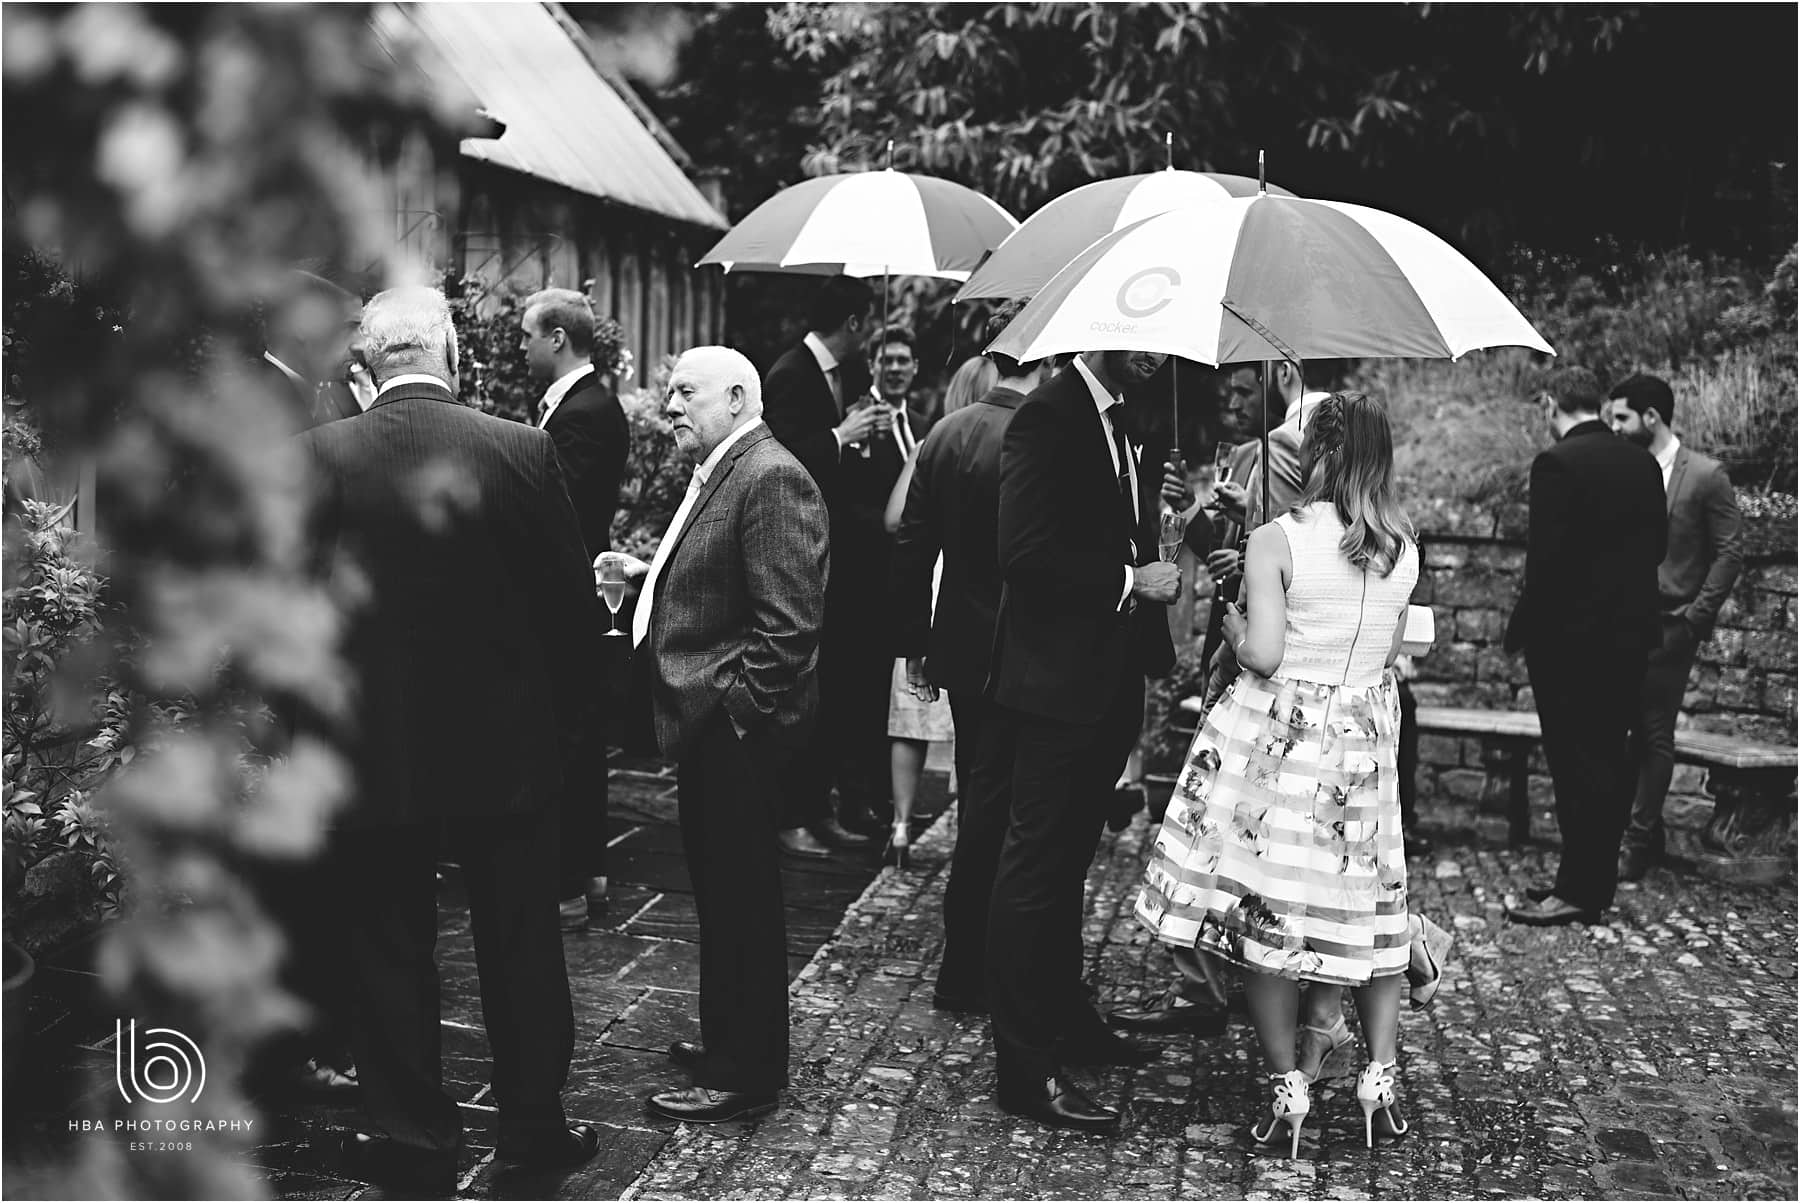 guests with umbrellas